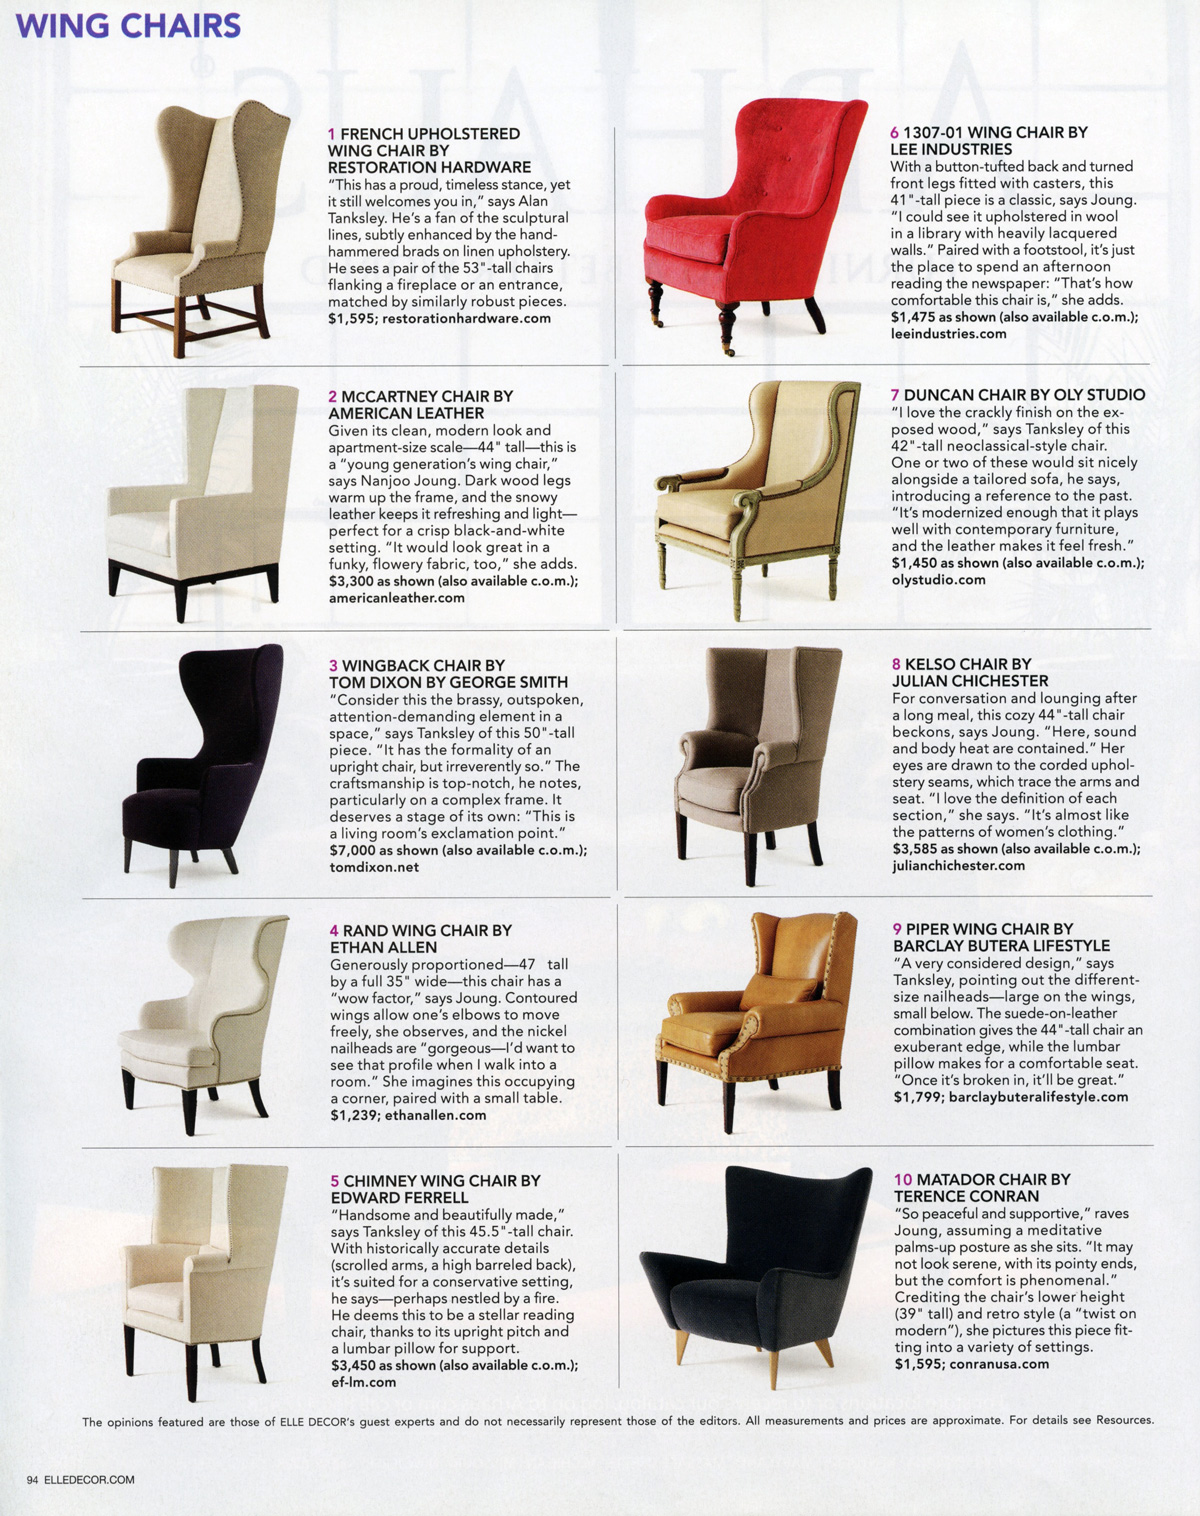 ATI---Elle-Decor-Wing-Chairs-Dec.-2010-Jan.-2011-Pg.2.jpg